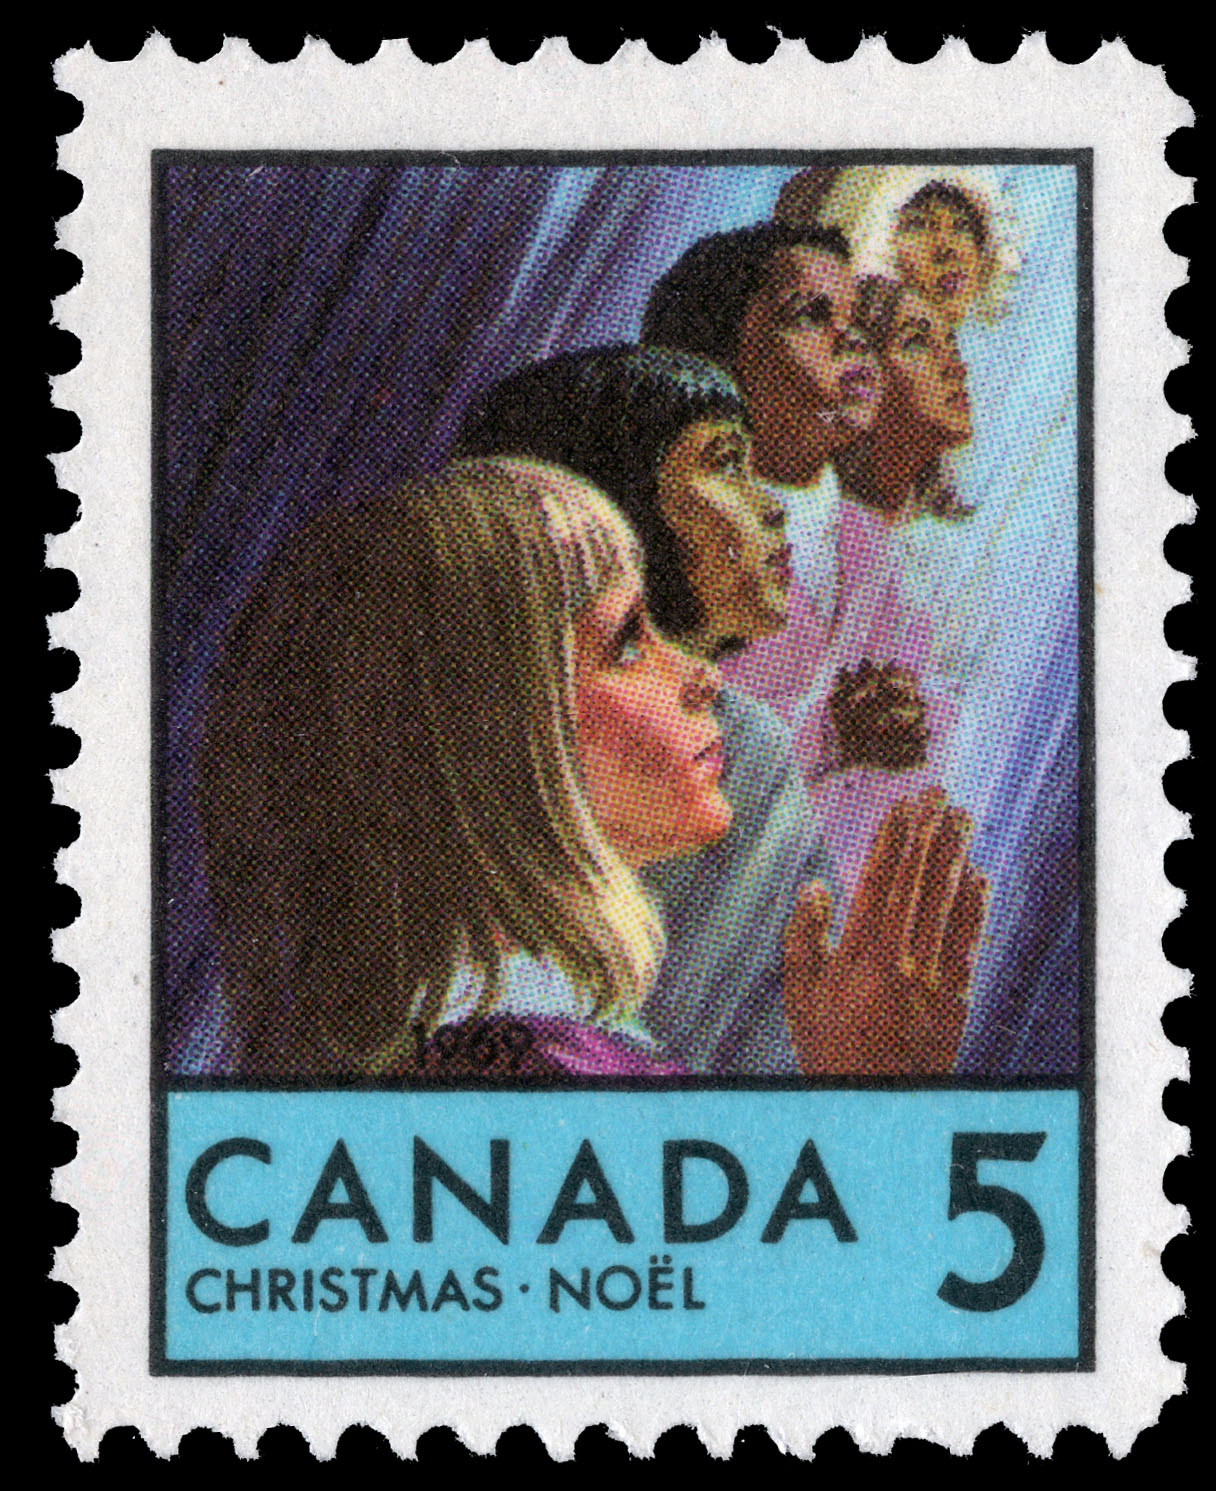 Faces of Children Canada Postage Stamp | Christmas